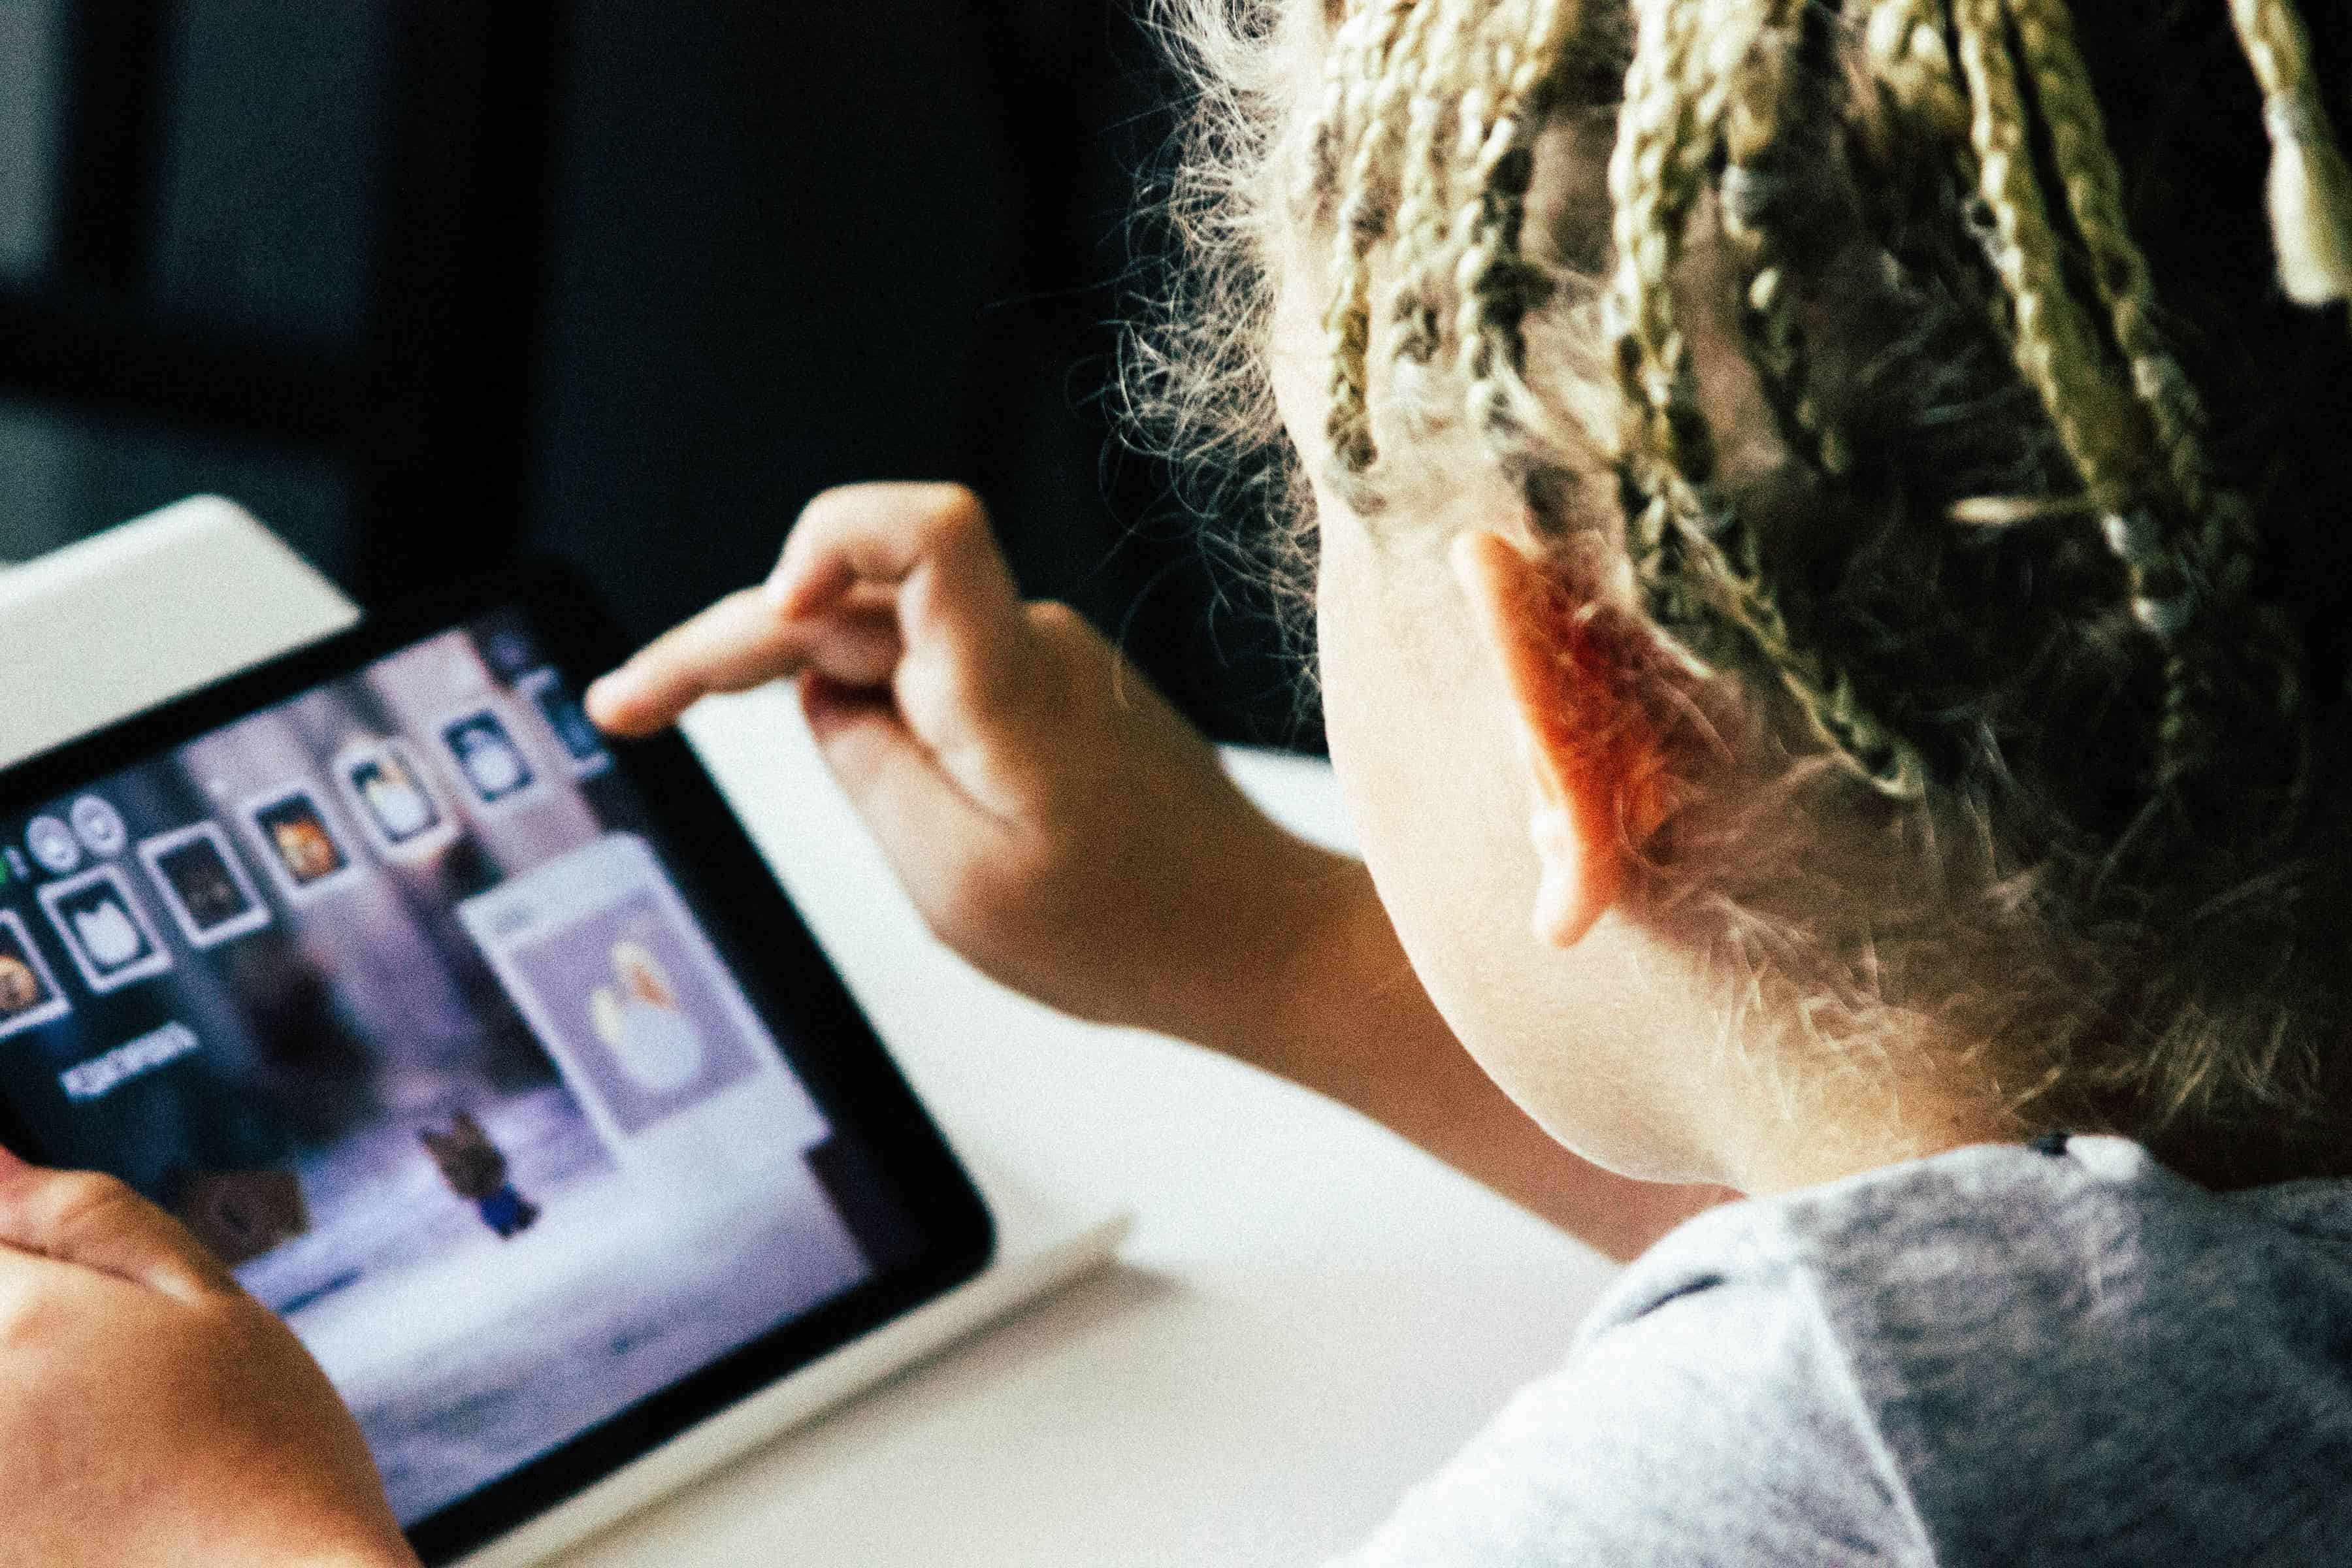 a girl is playing with her tablet.